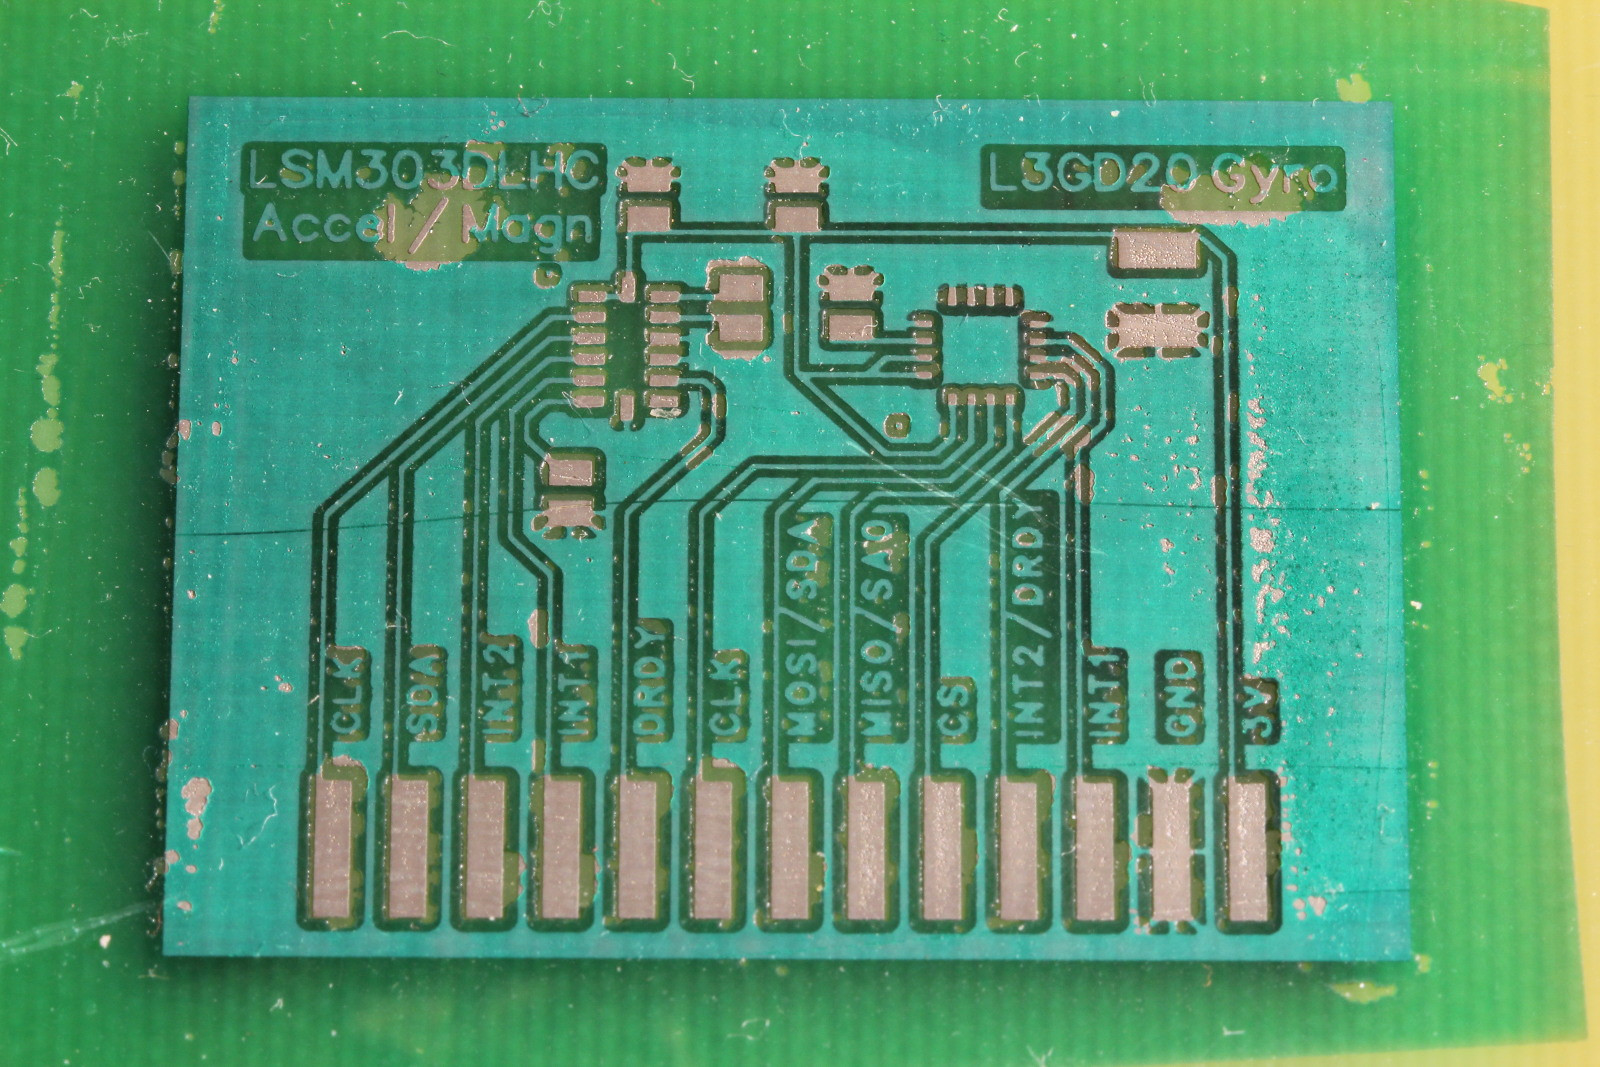 Best ideas about DIY Solder Mask . Save or Pin FarrellF Now.